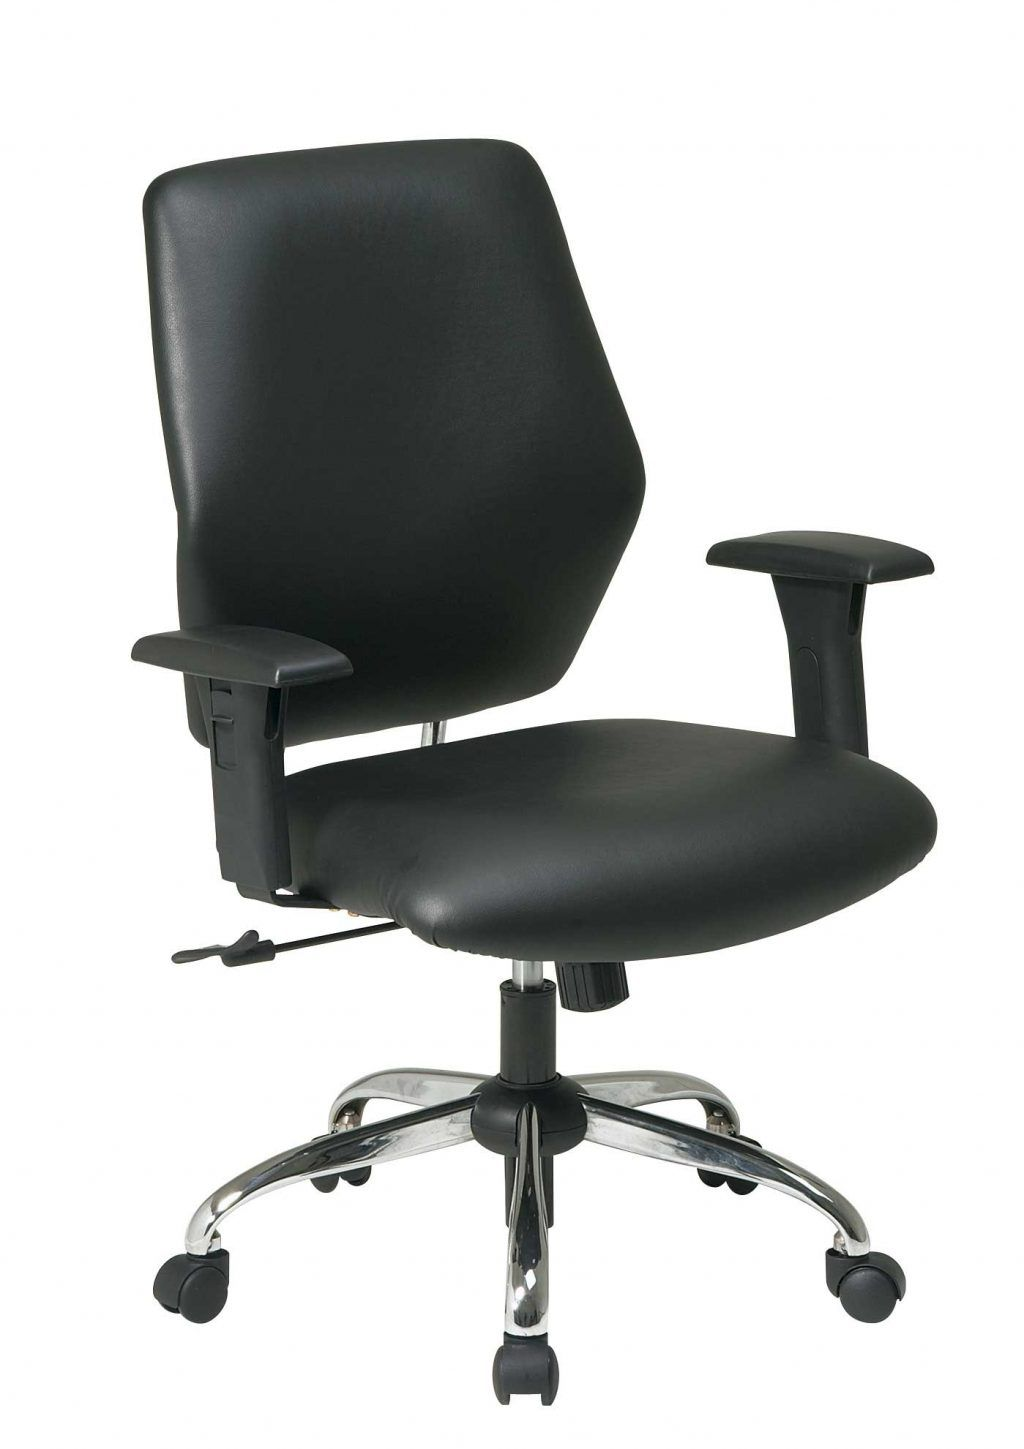 comfortable office chair. Explore Comfortable Office Chair, Desk Chairs And More! Chair